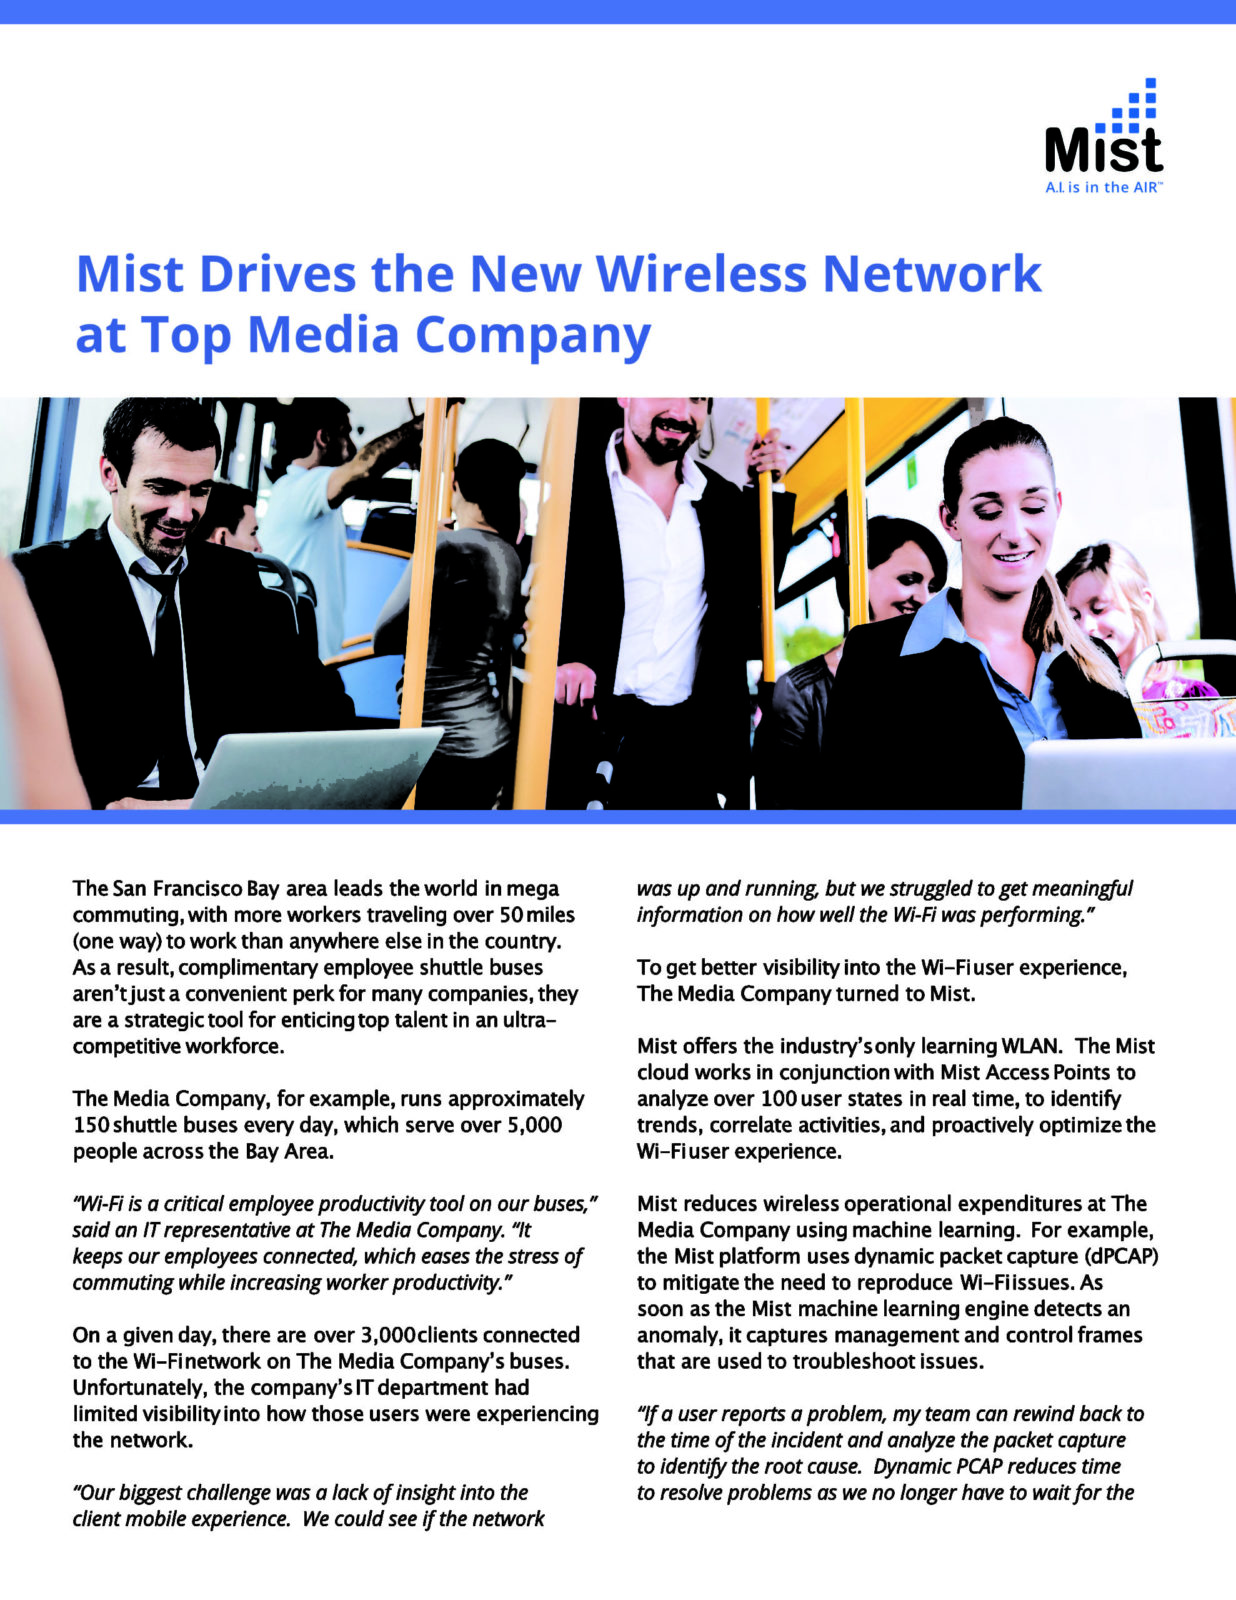 Mist WiFi case study: The Media Company